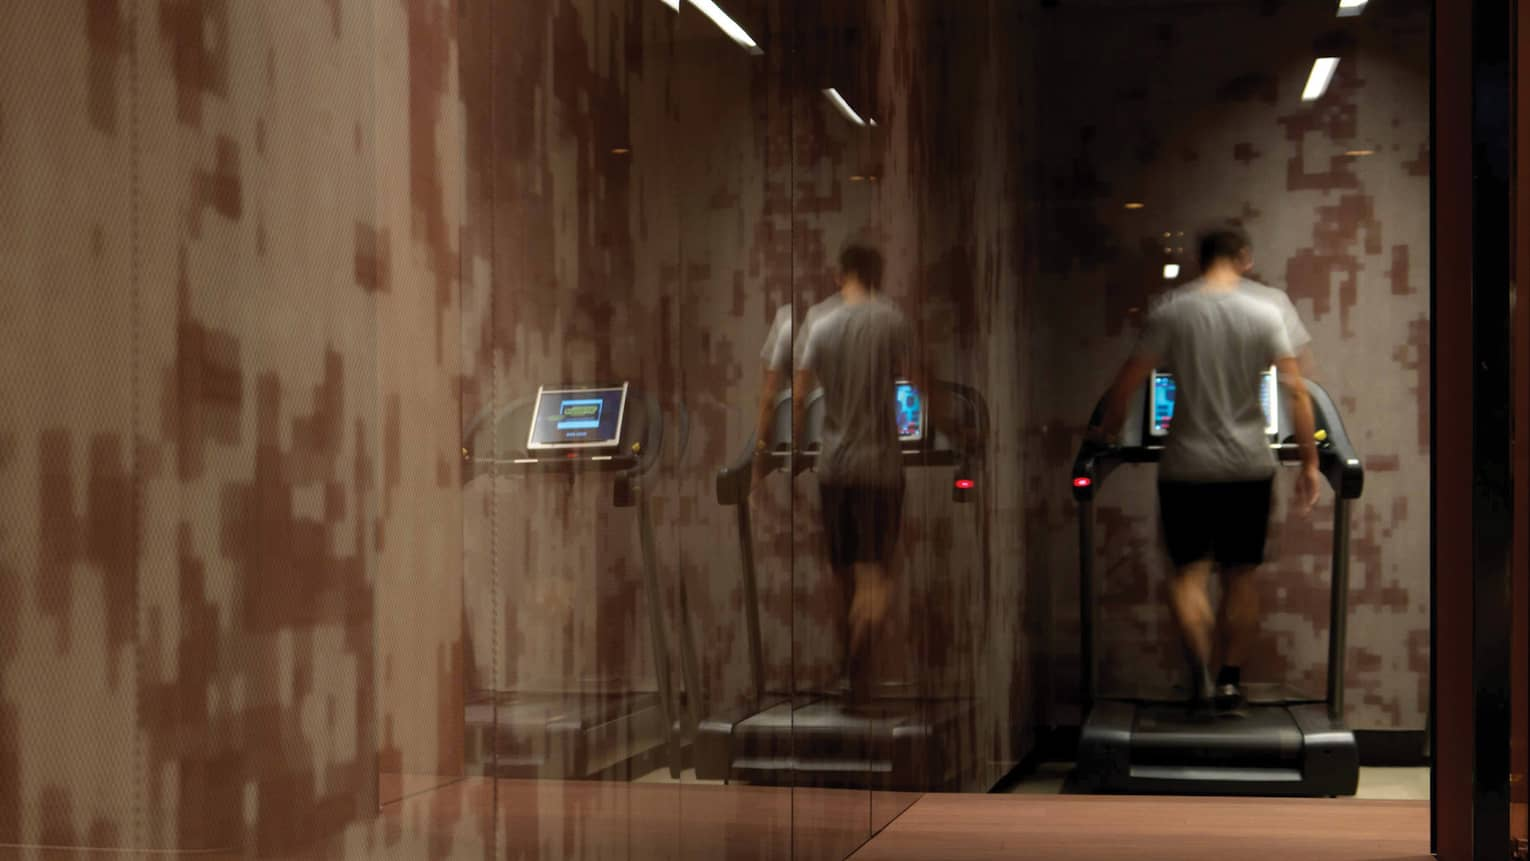 Back of man walking on treadmill in dimly-lit Fitness Centre